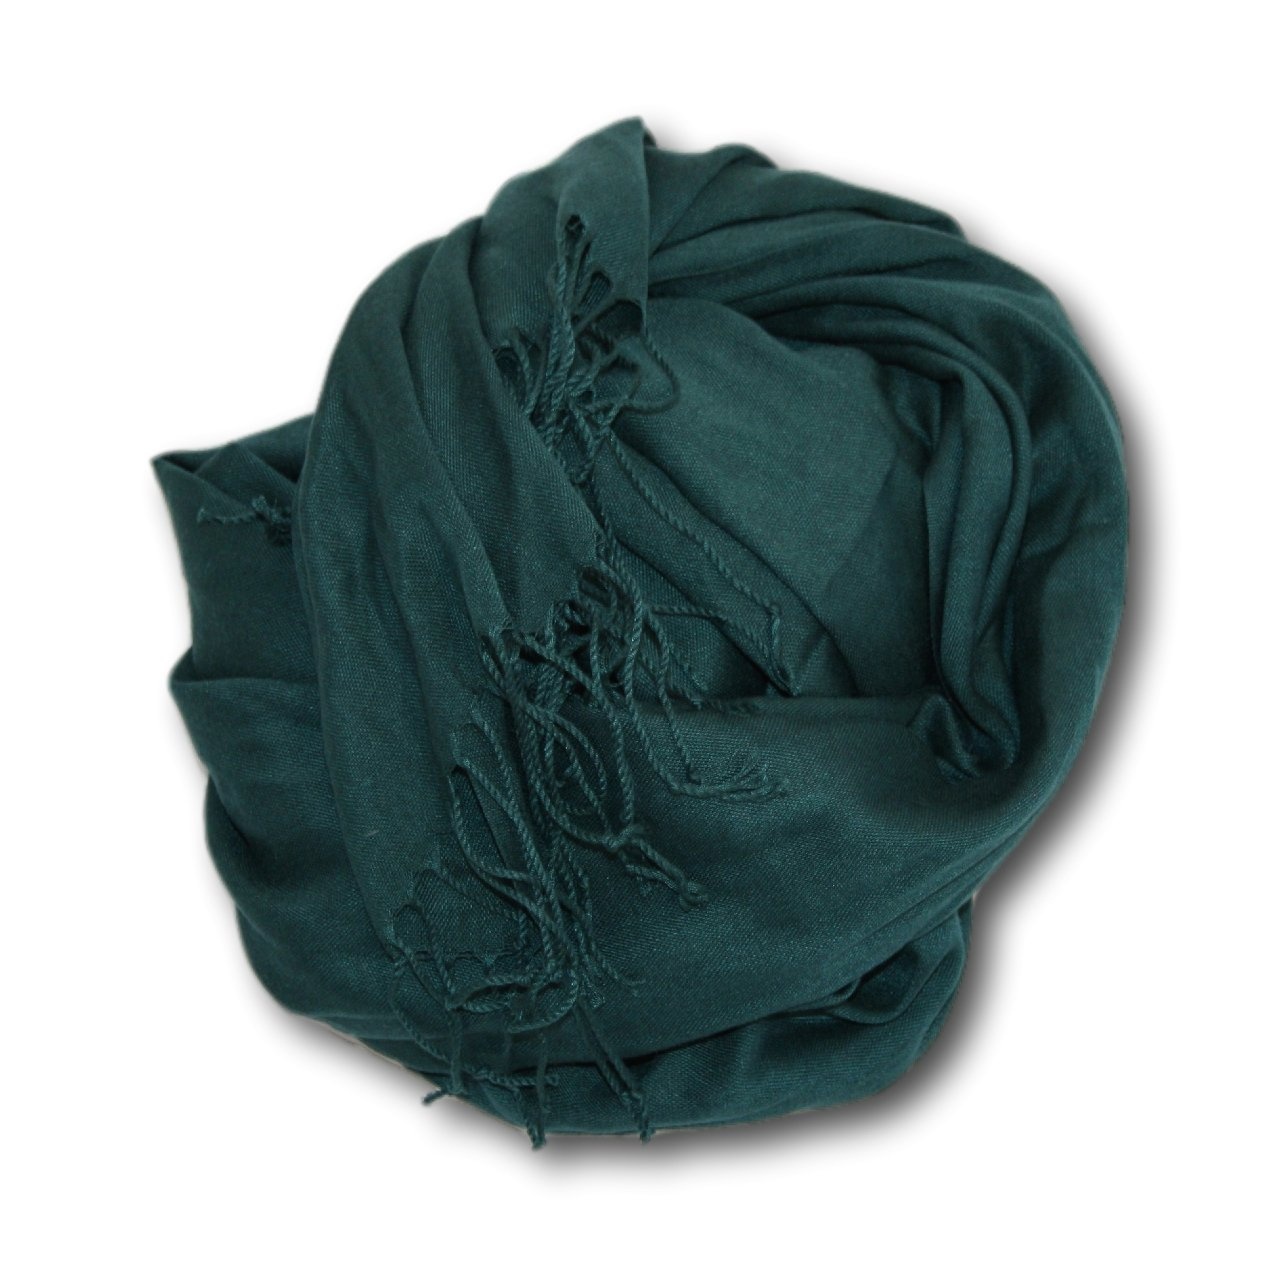 Pashmina-Style Wrap in Conifer Forest Green PASH_020